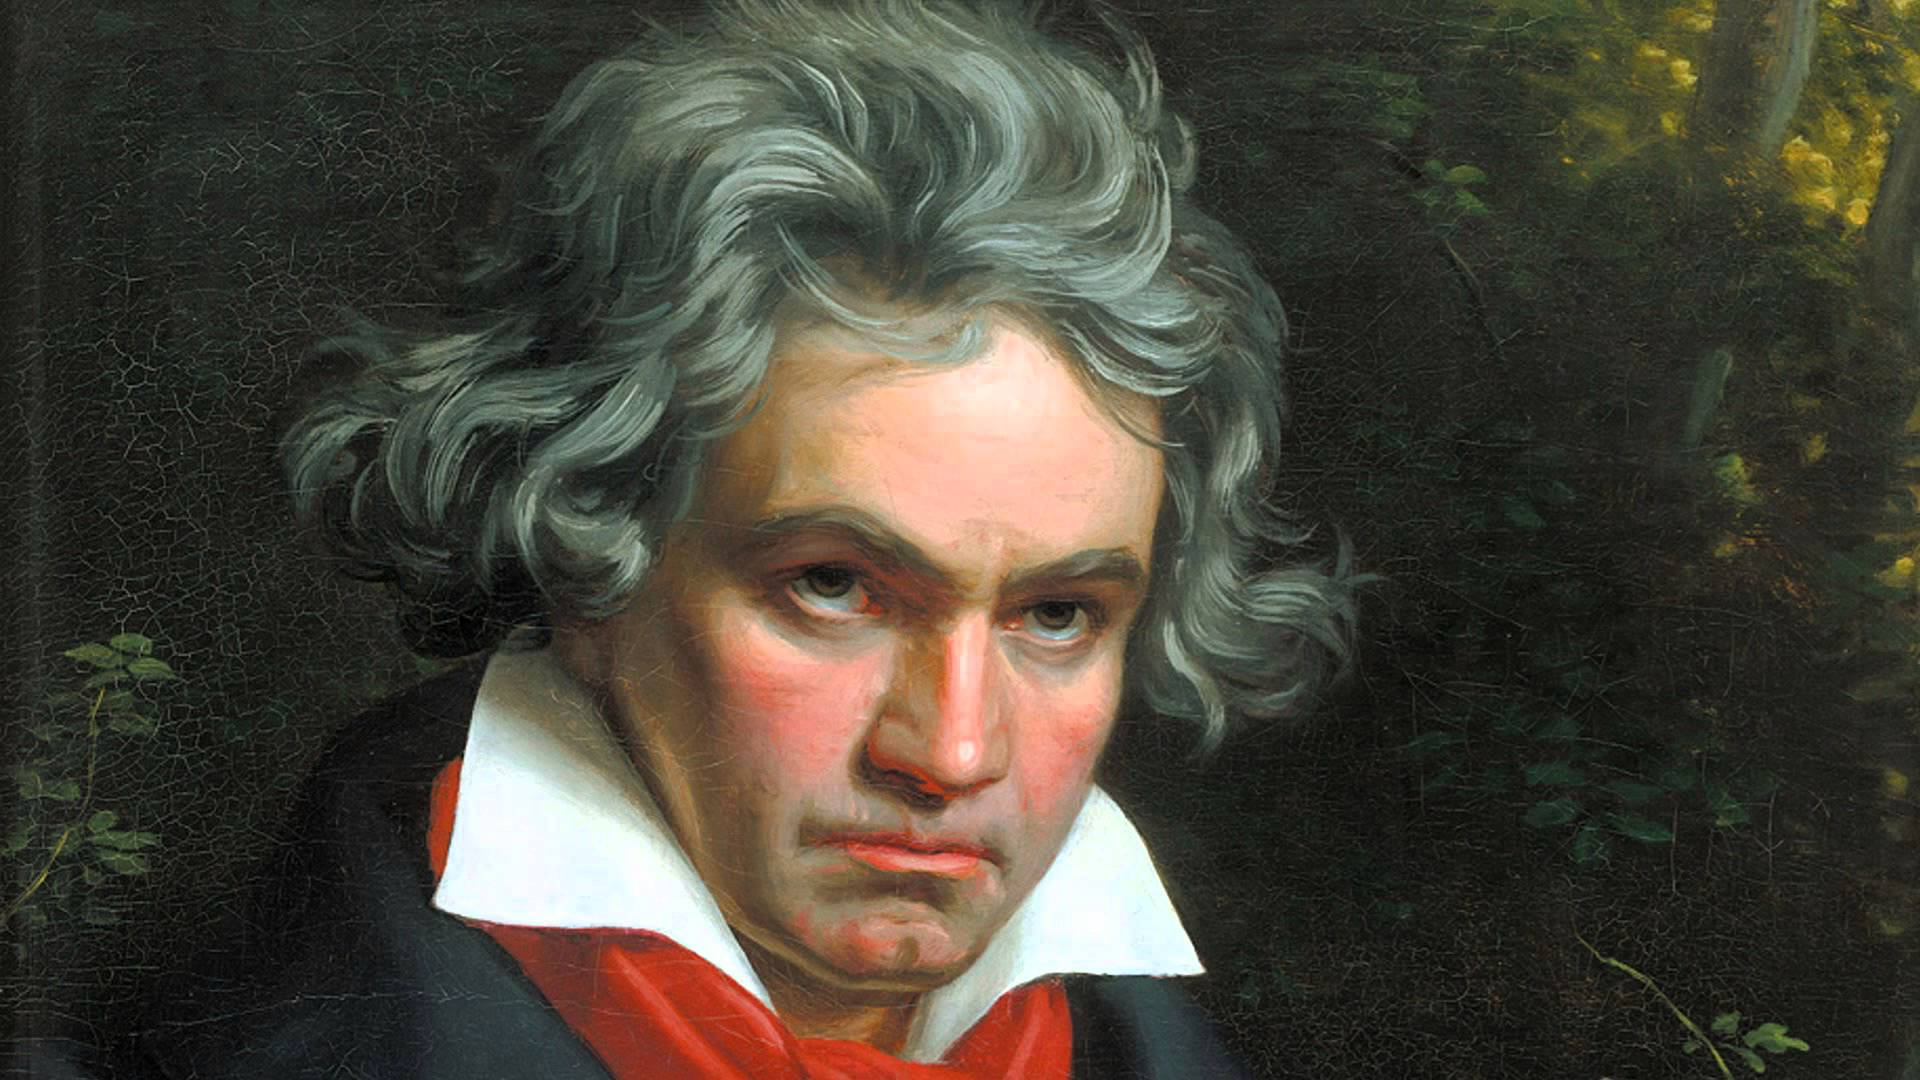 Know who you're Googling: Beethoven